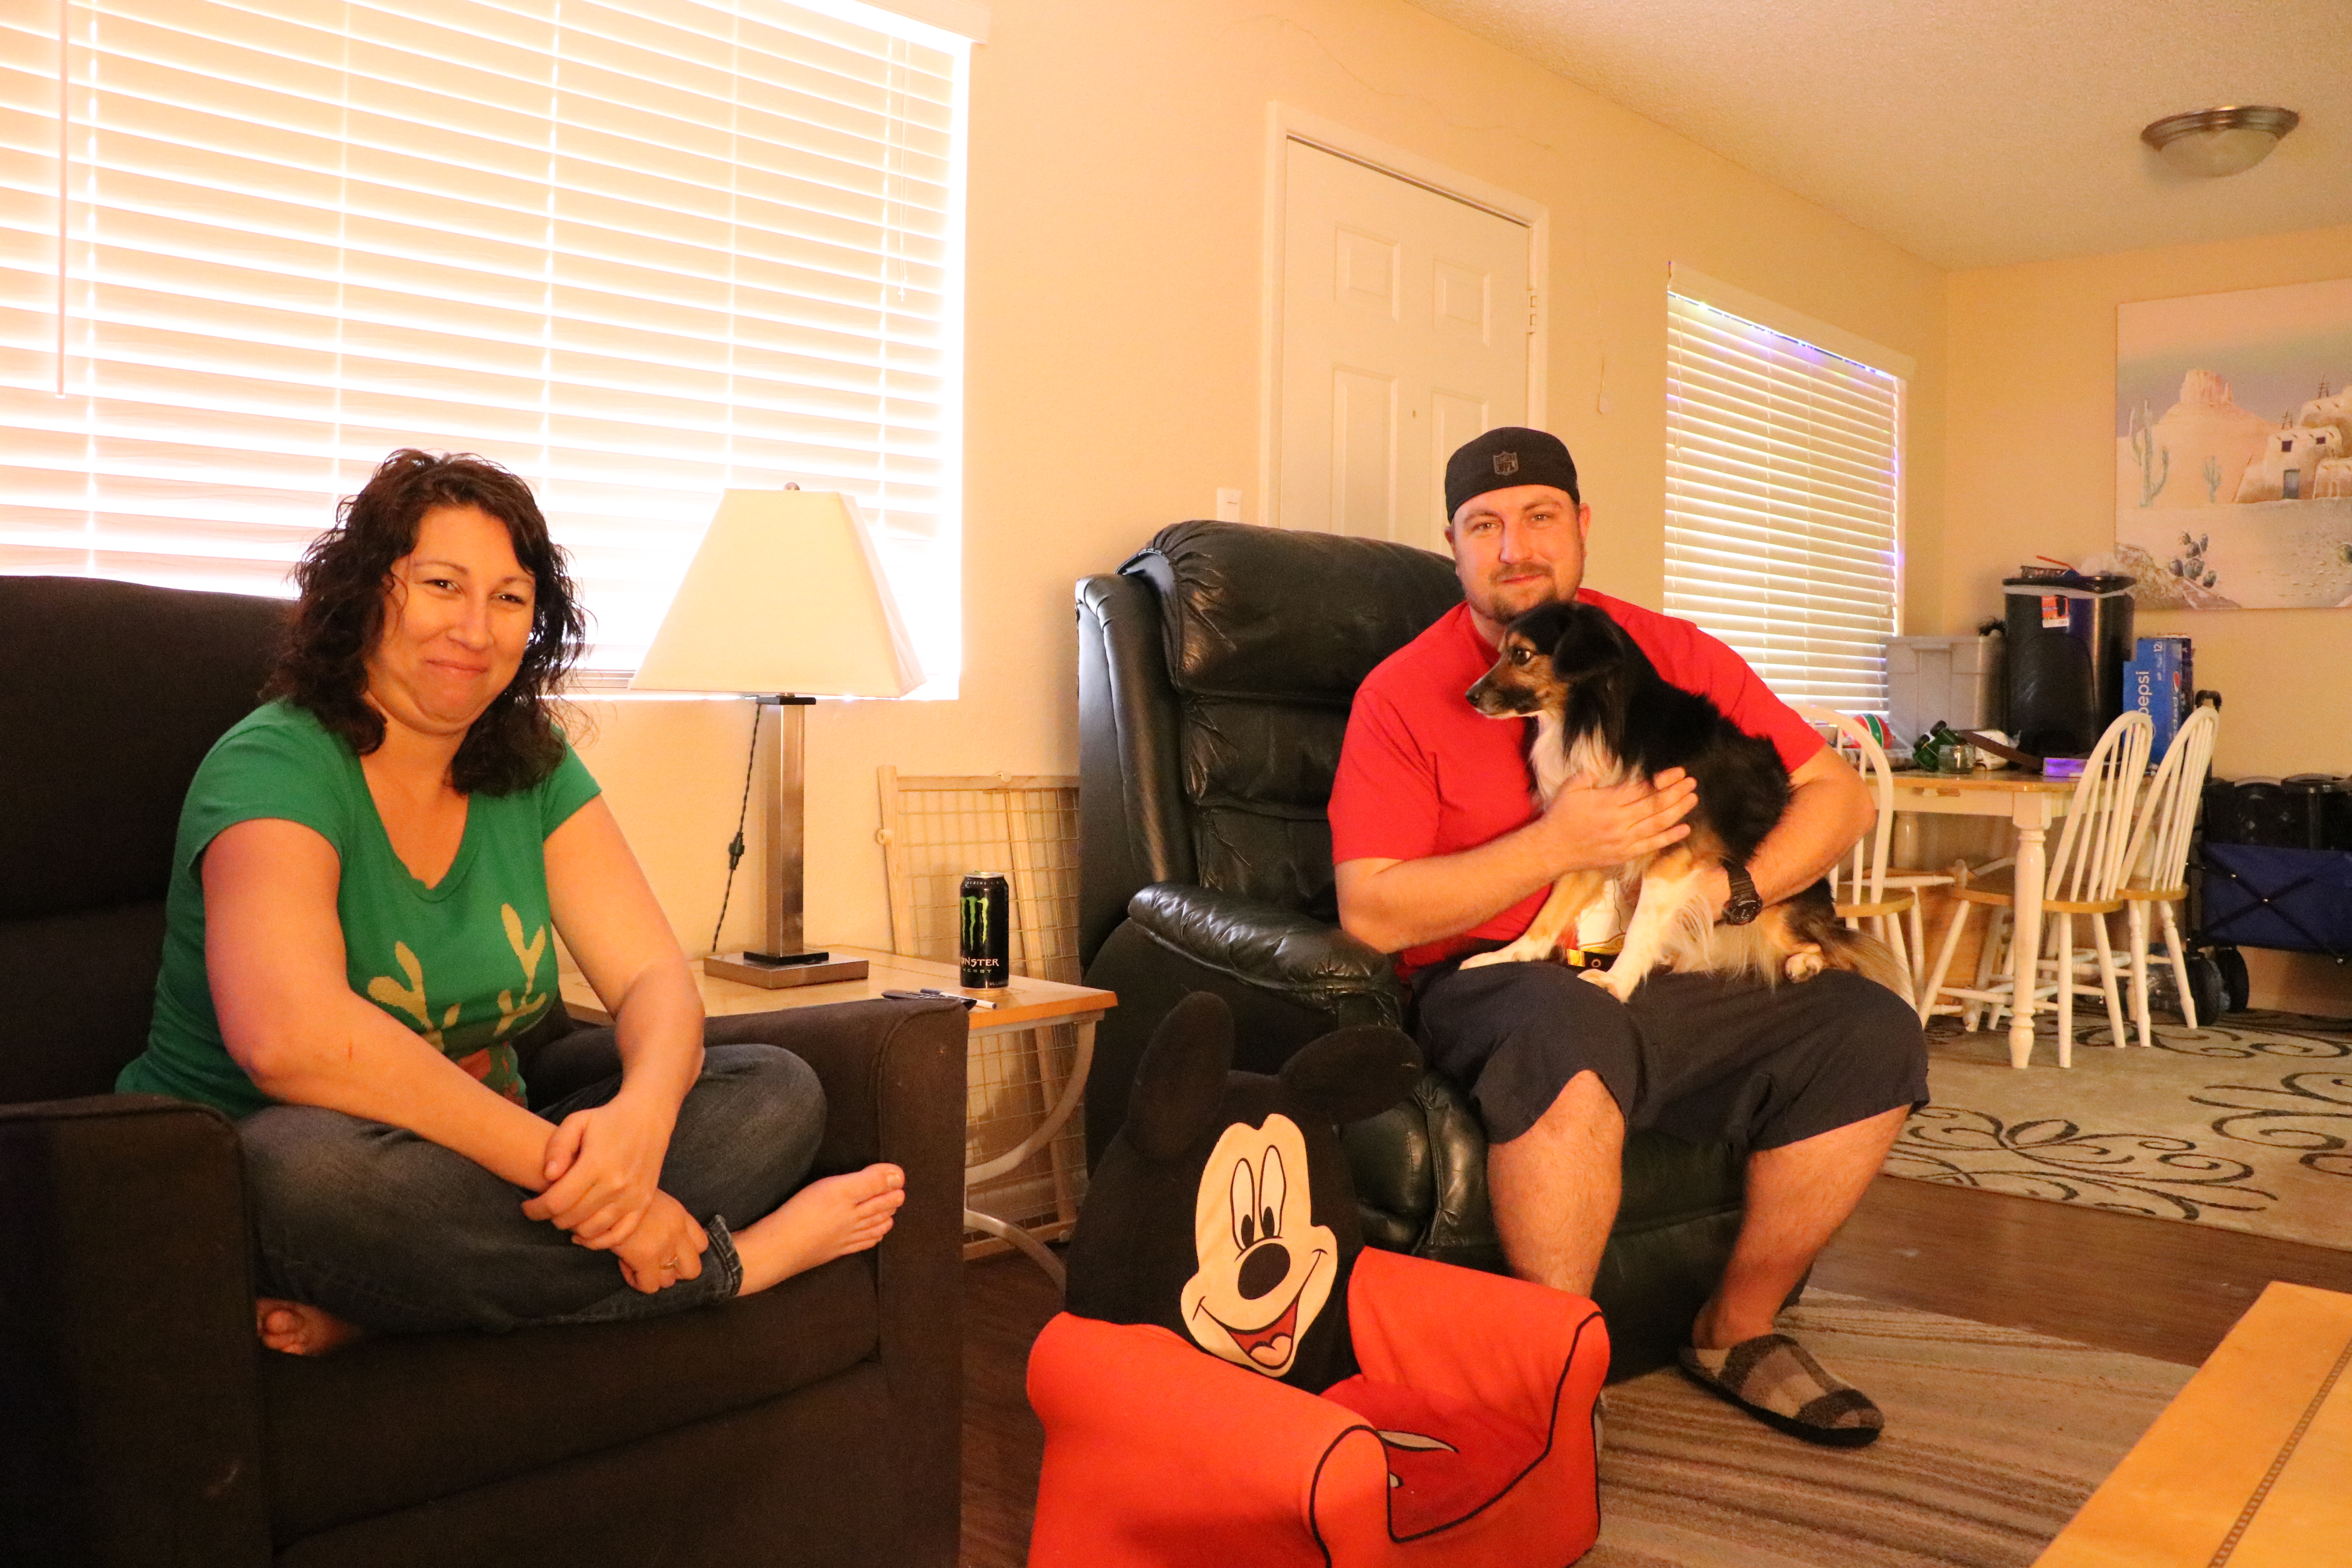 Woman and man sitting in chairs.  Man holds the family dog in his lap